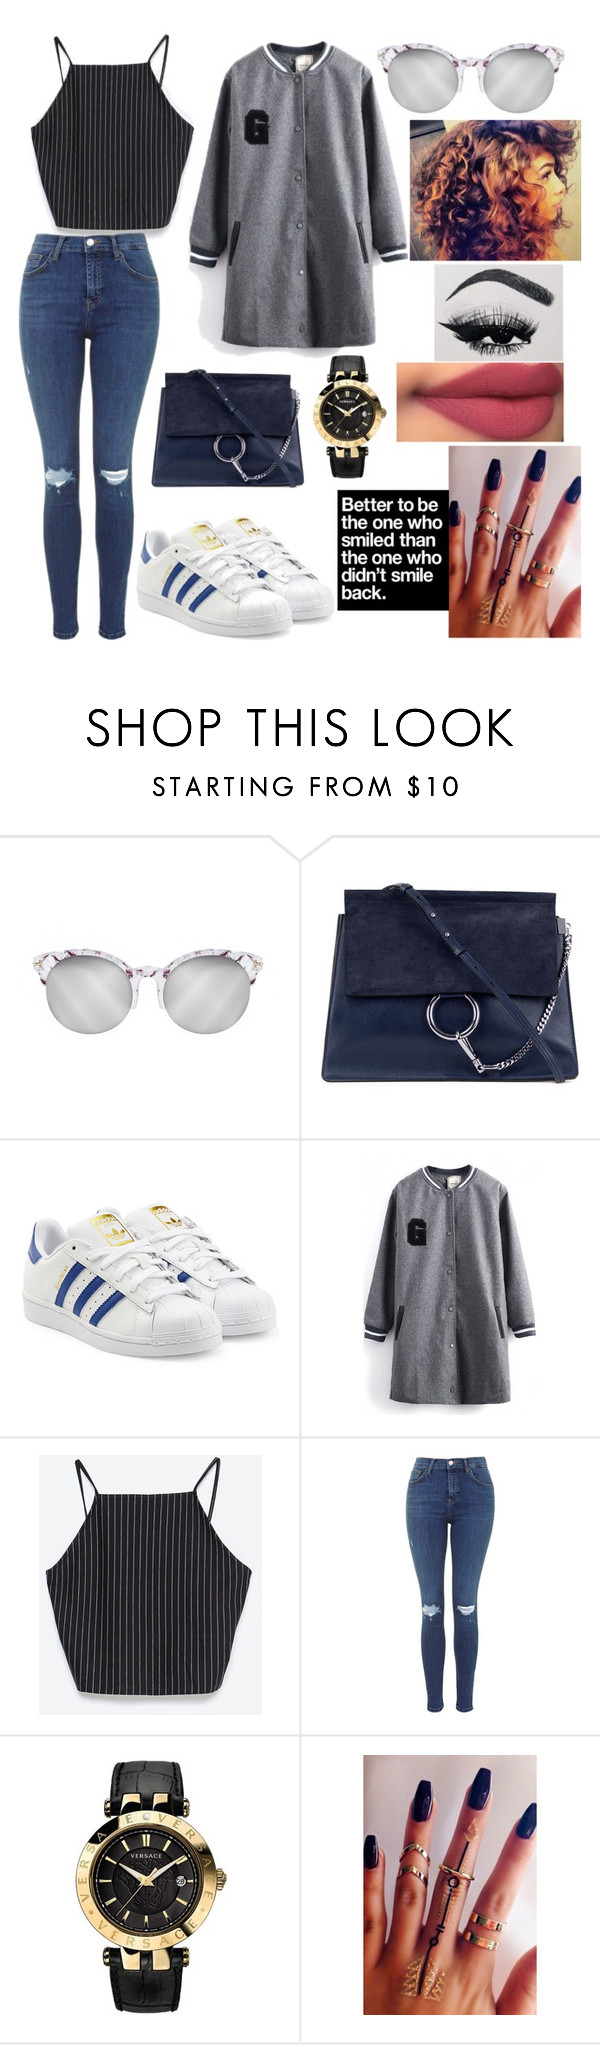 """""""Untitled #252"""" by rebeccamcruzofficial ❤ liked on Polyvore featuring Chloé, adidas Originals, Zara, Versace and Americanflat"""